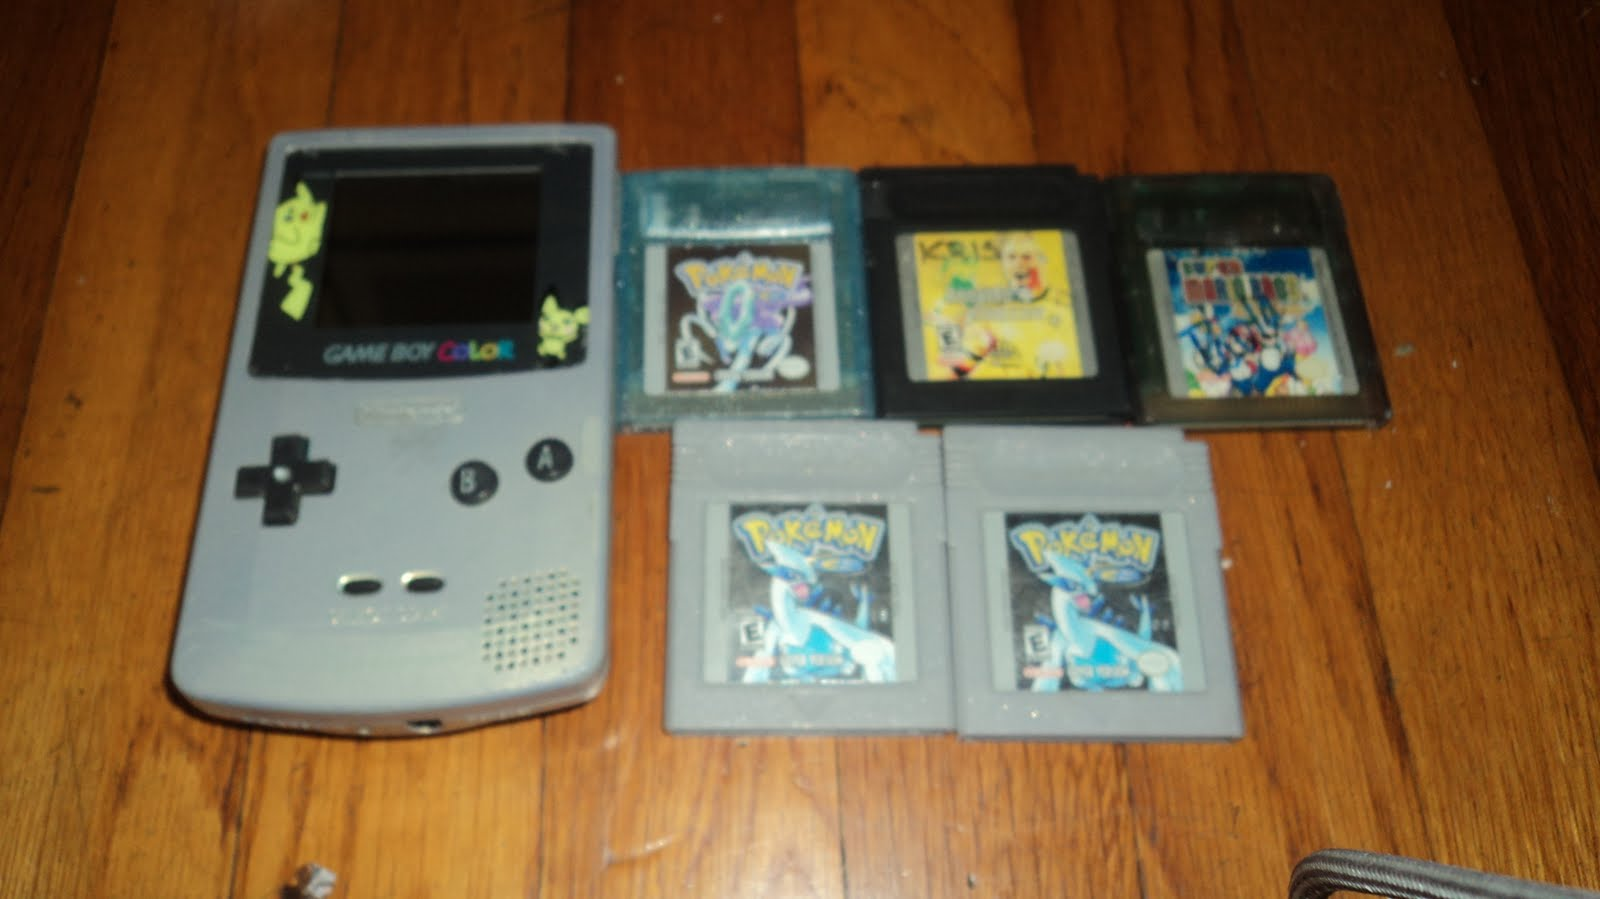 Game boy color super mario bros deluxe - I Also Picked Up Two Pokemon Silver Games For Five Bucks Pokemon Crystal For Five Bucks Ronaldo V Soccer For Two Bucks And Super Mario Bros Deluxe For